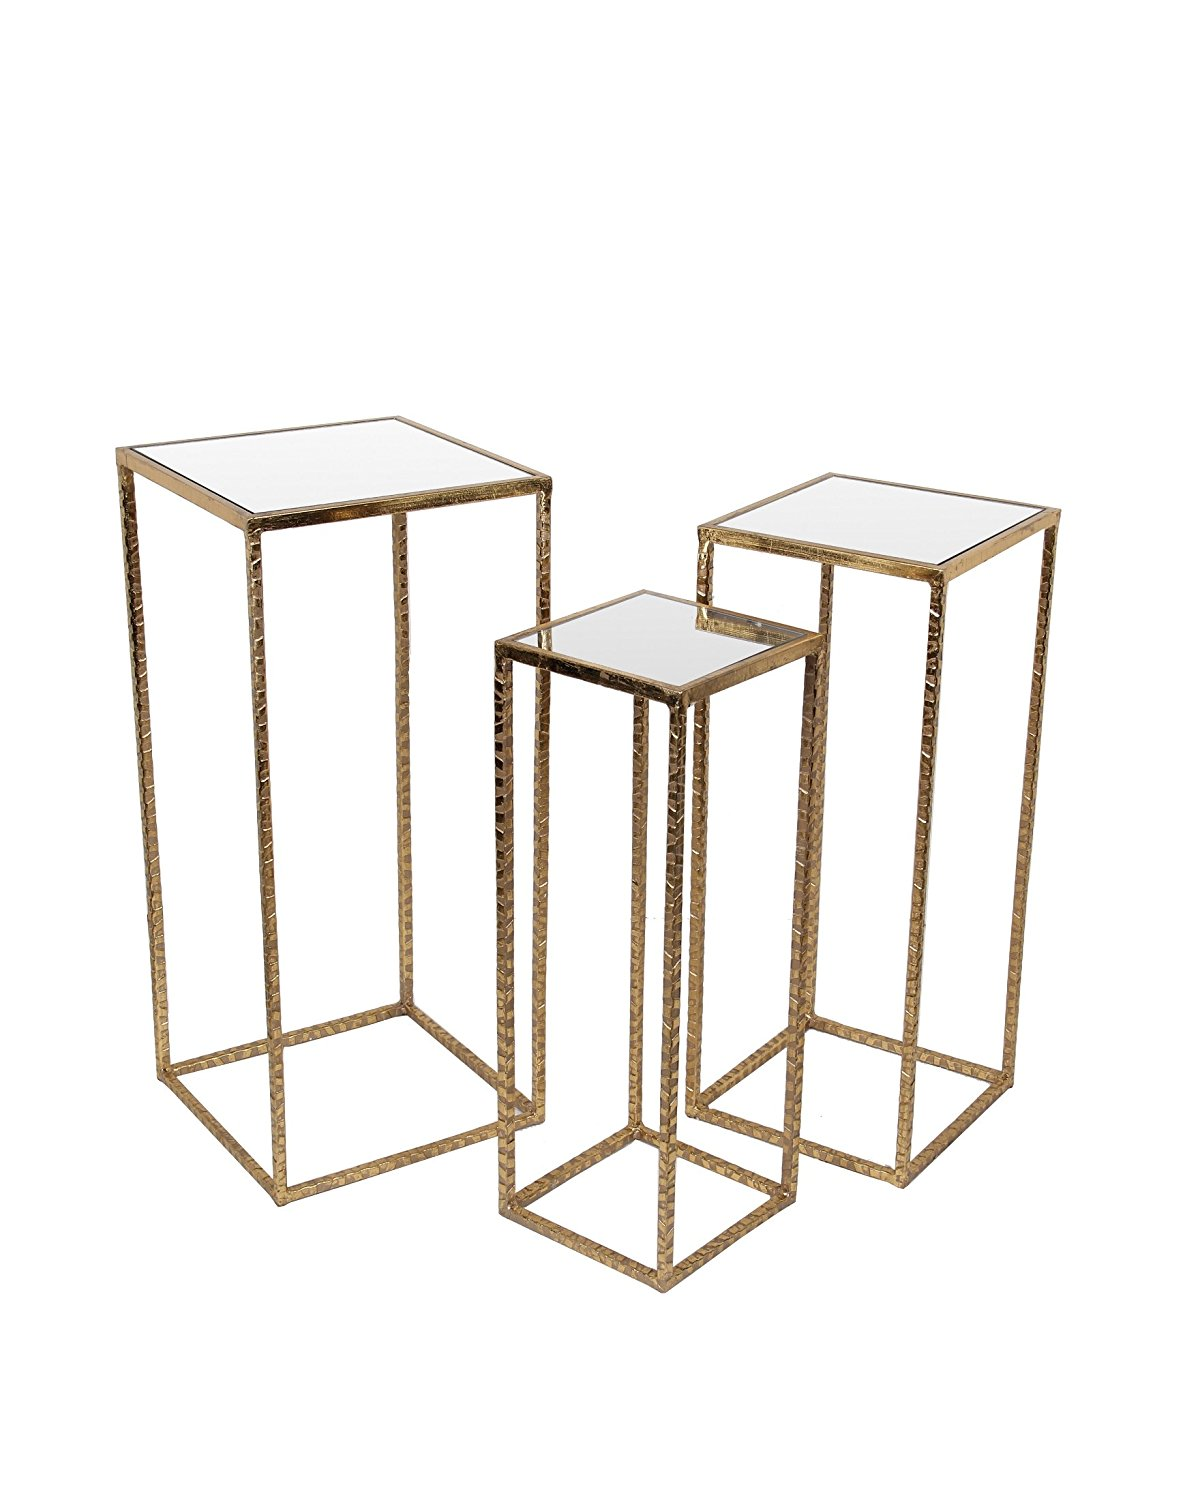 metal glass accent tables find square table get quotations piece nesting gold finish and set round farmhouse dining weathered wood side safavieh oval garden door chair design